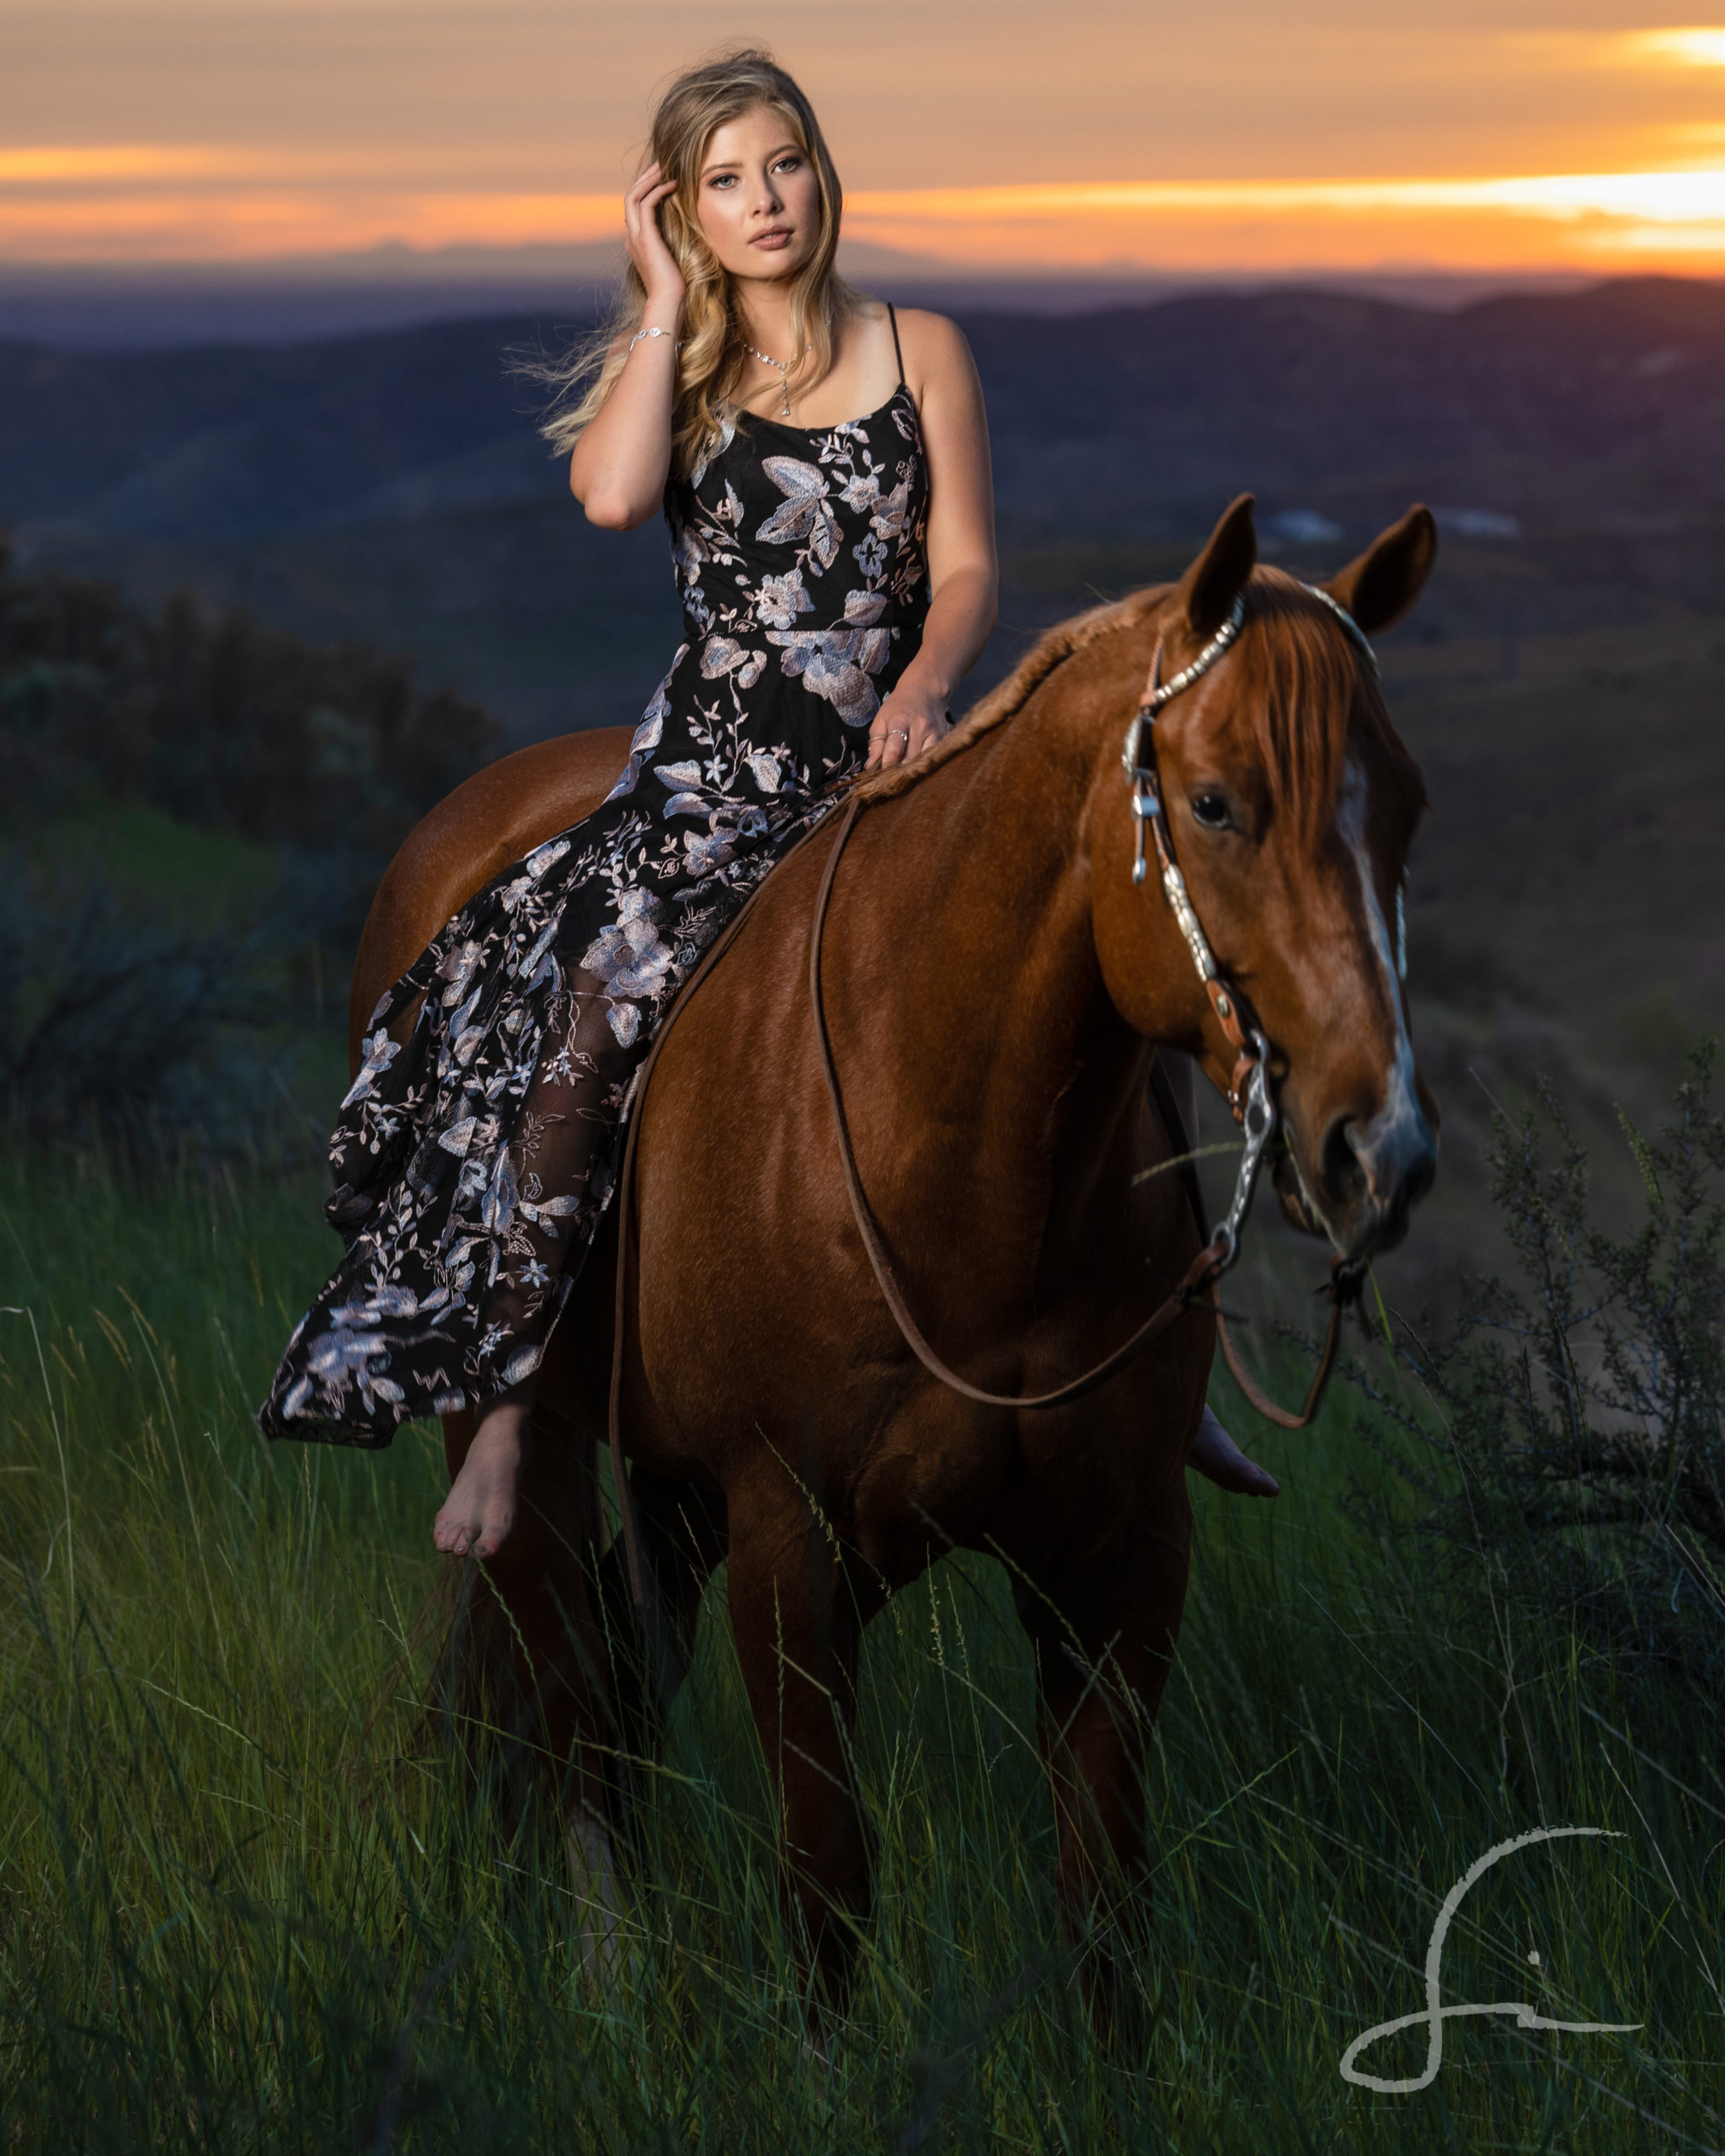 teen girl on her horse in a field at sunset